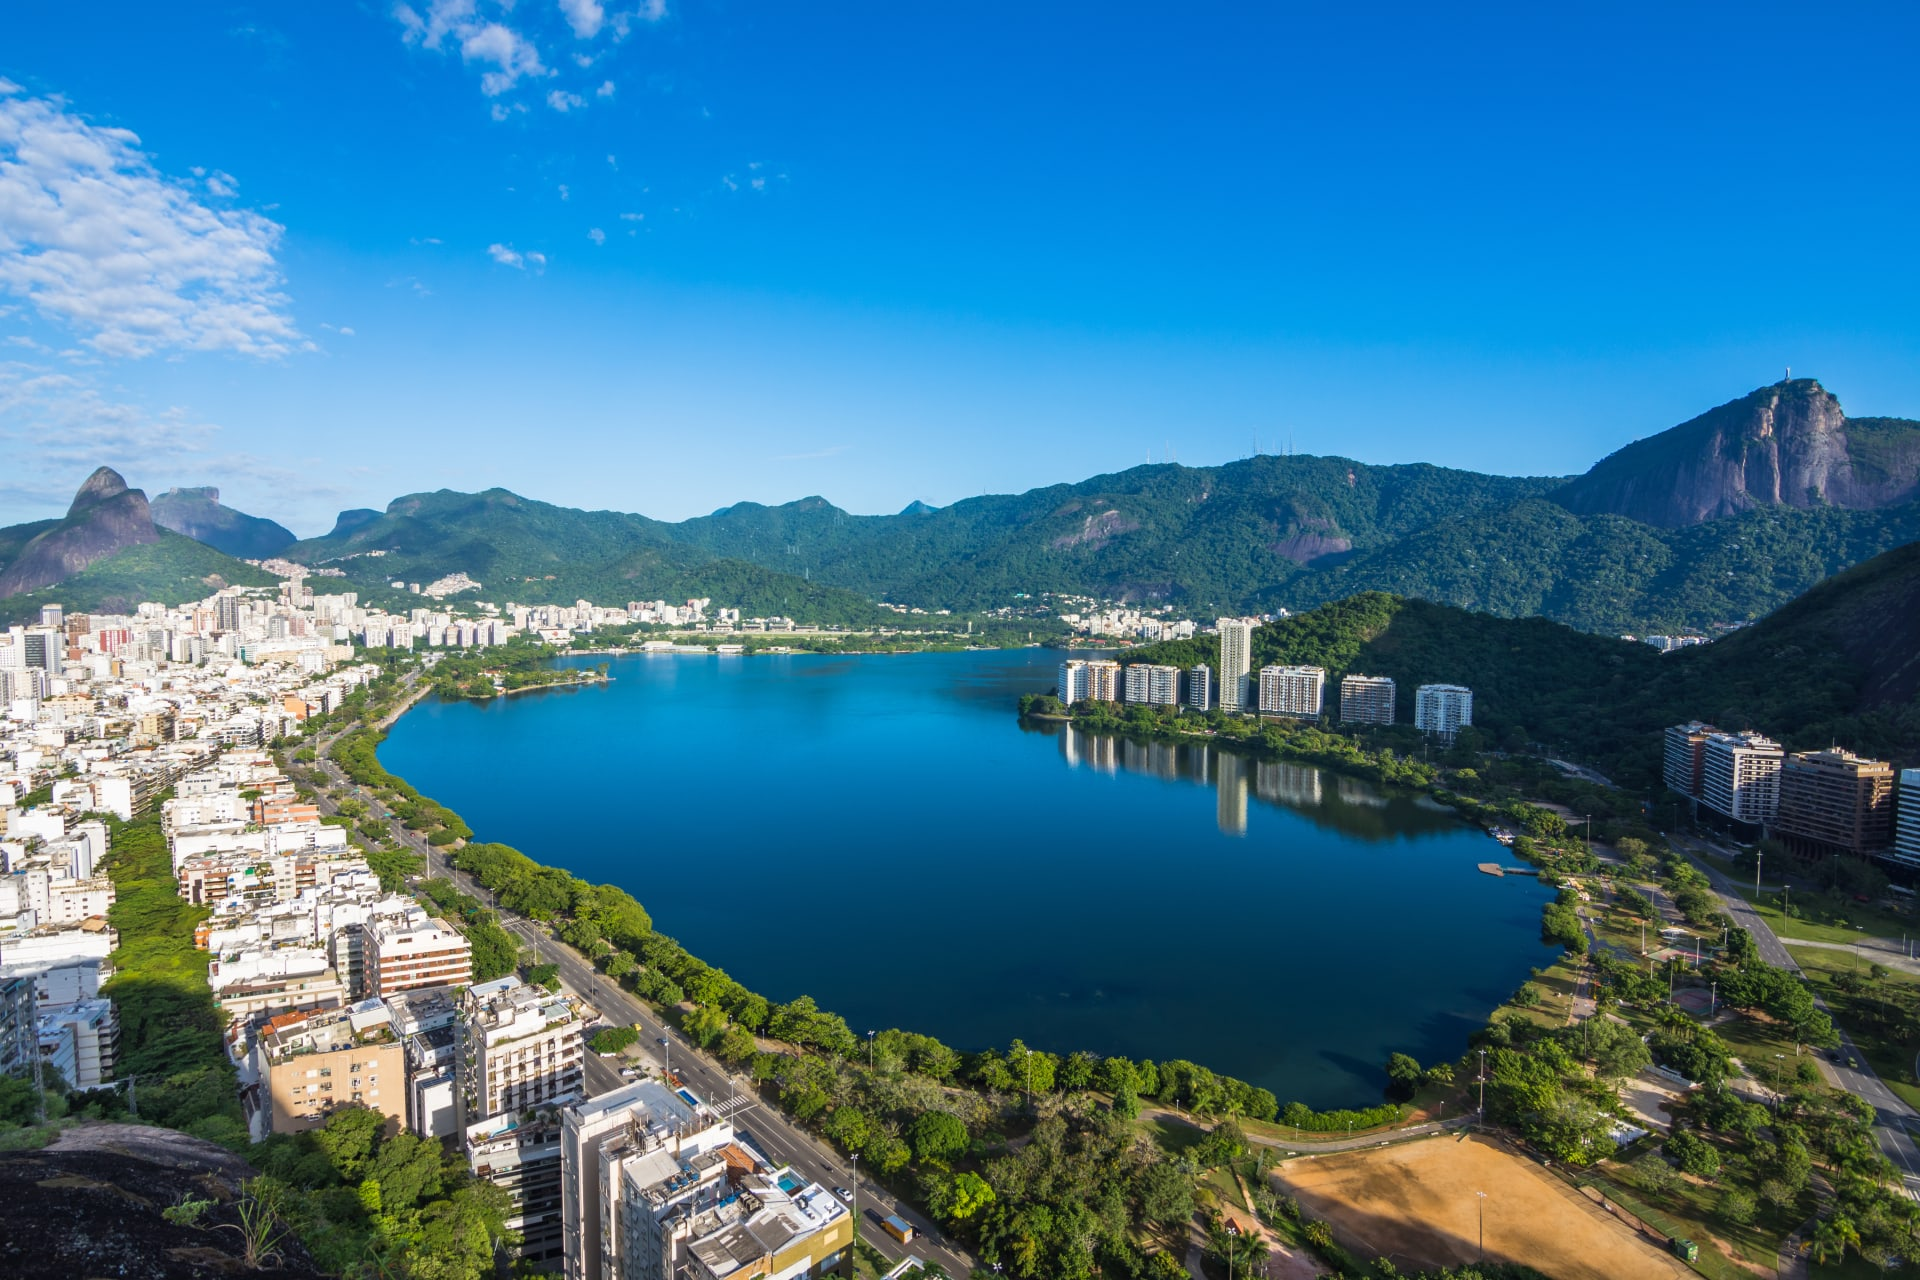 Rio de Janeiro - Hiking in the Forest with Art - Catacumba Park